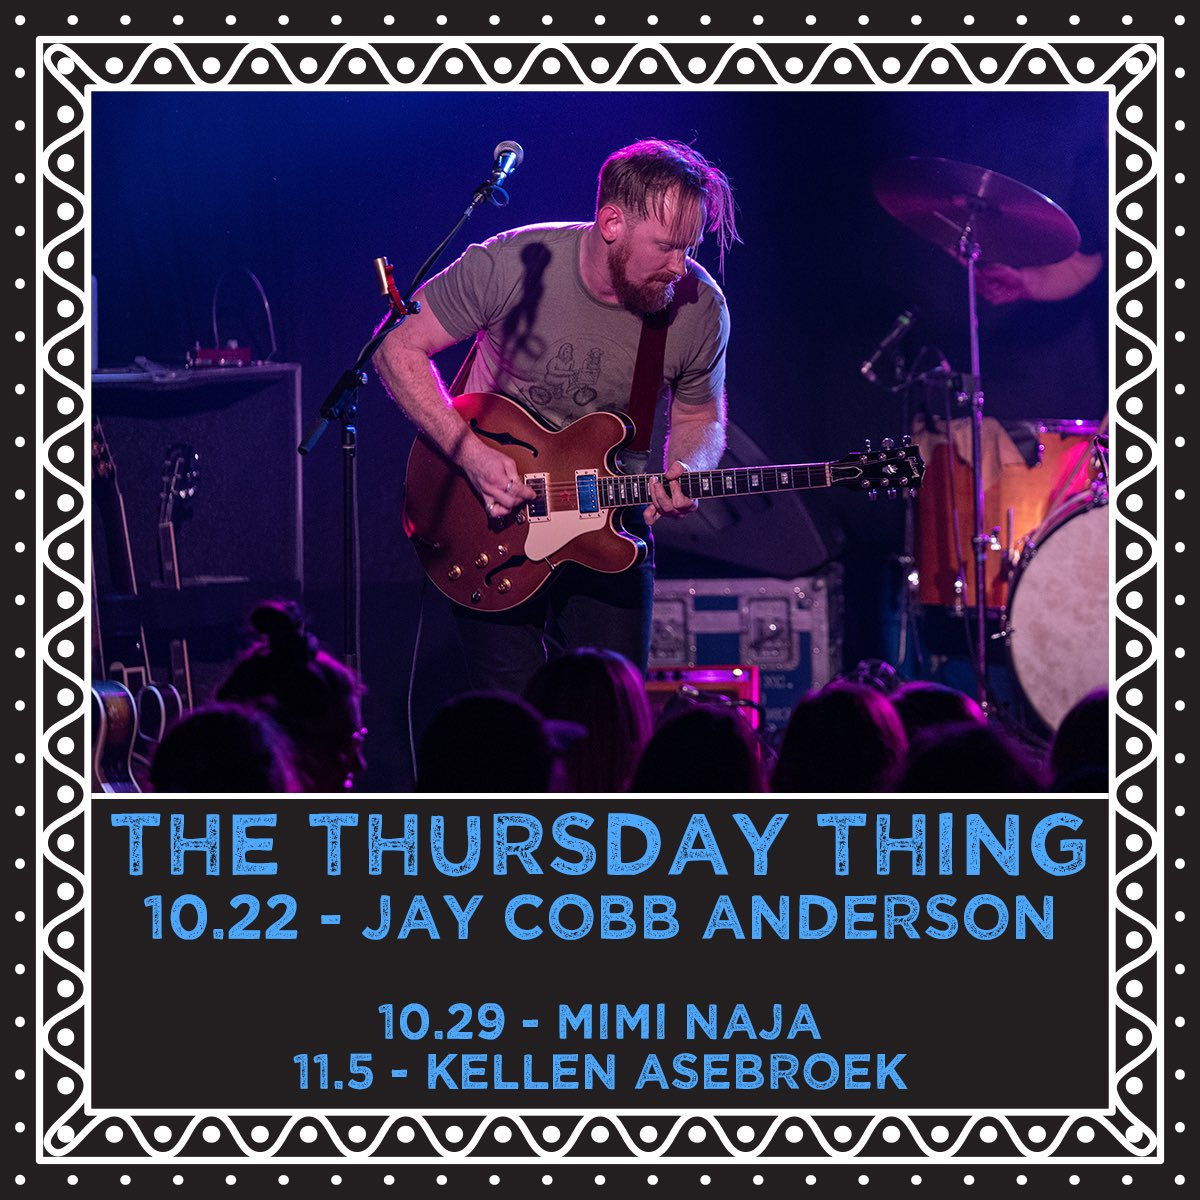 """We've updated the rotation and Jay will be taking over this week's Thursday Thing on Facebook at 4pm PT. Have you heard the new song """"Stand With You"""" yet? It's a brand new composition from Jay. 📷 Scott Seifert Photography"""